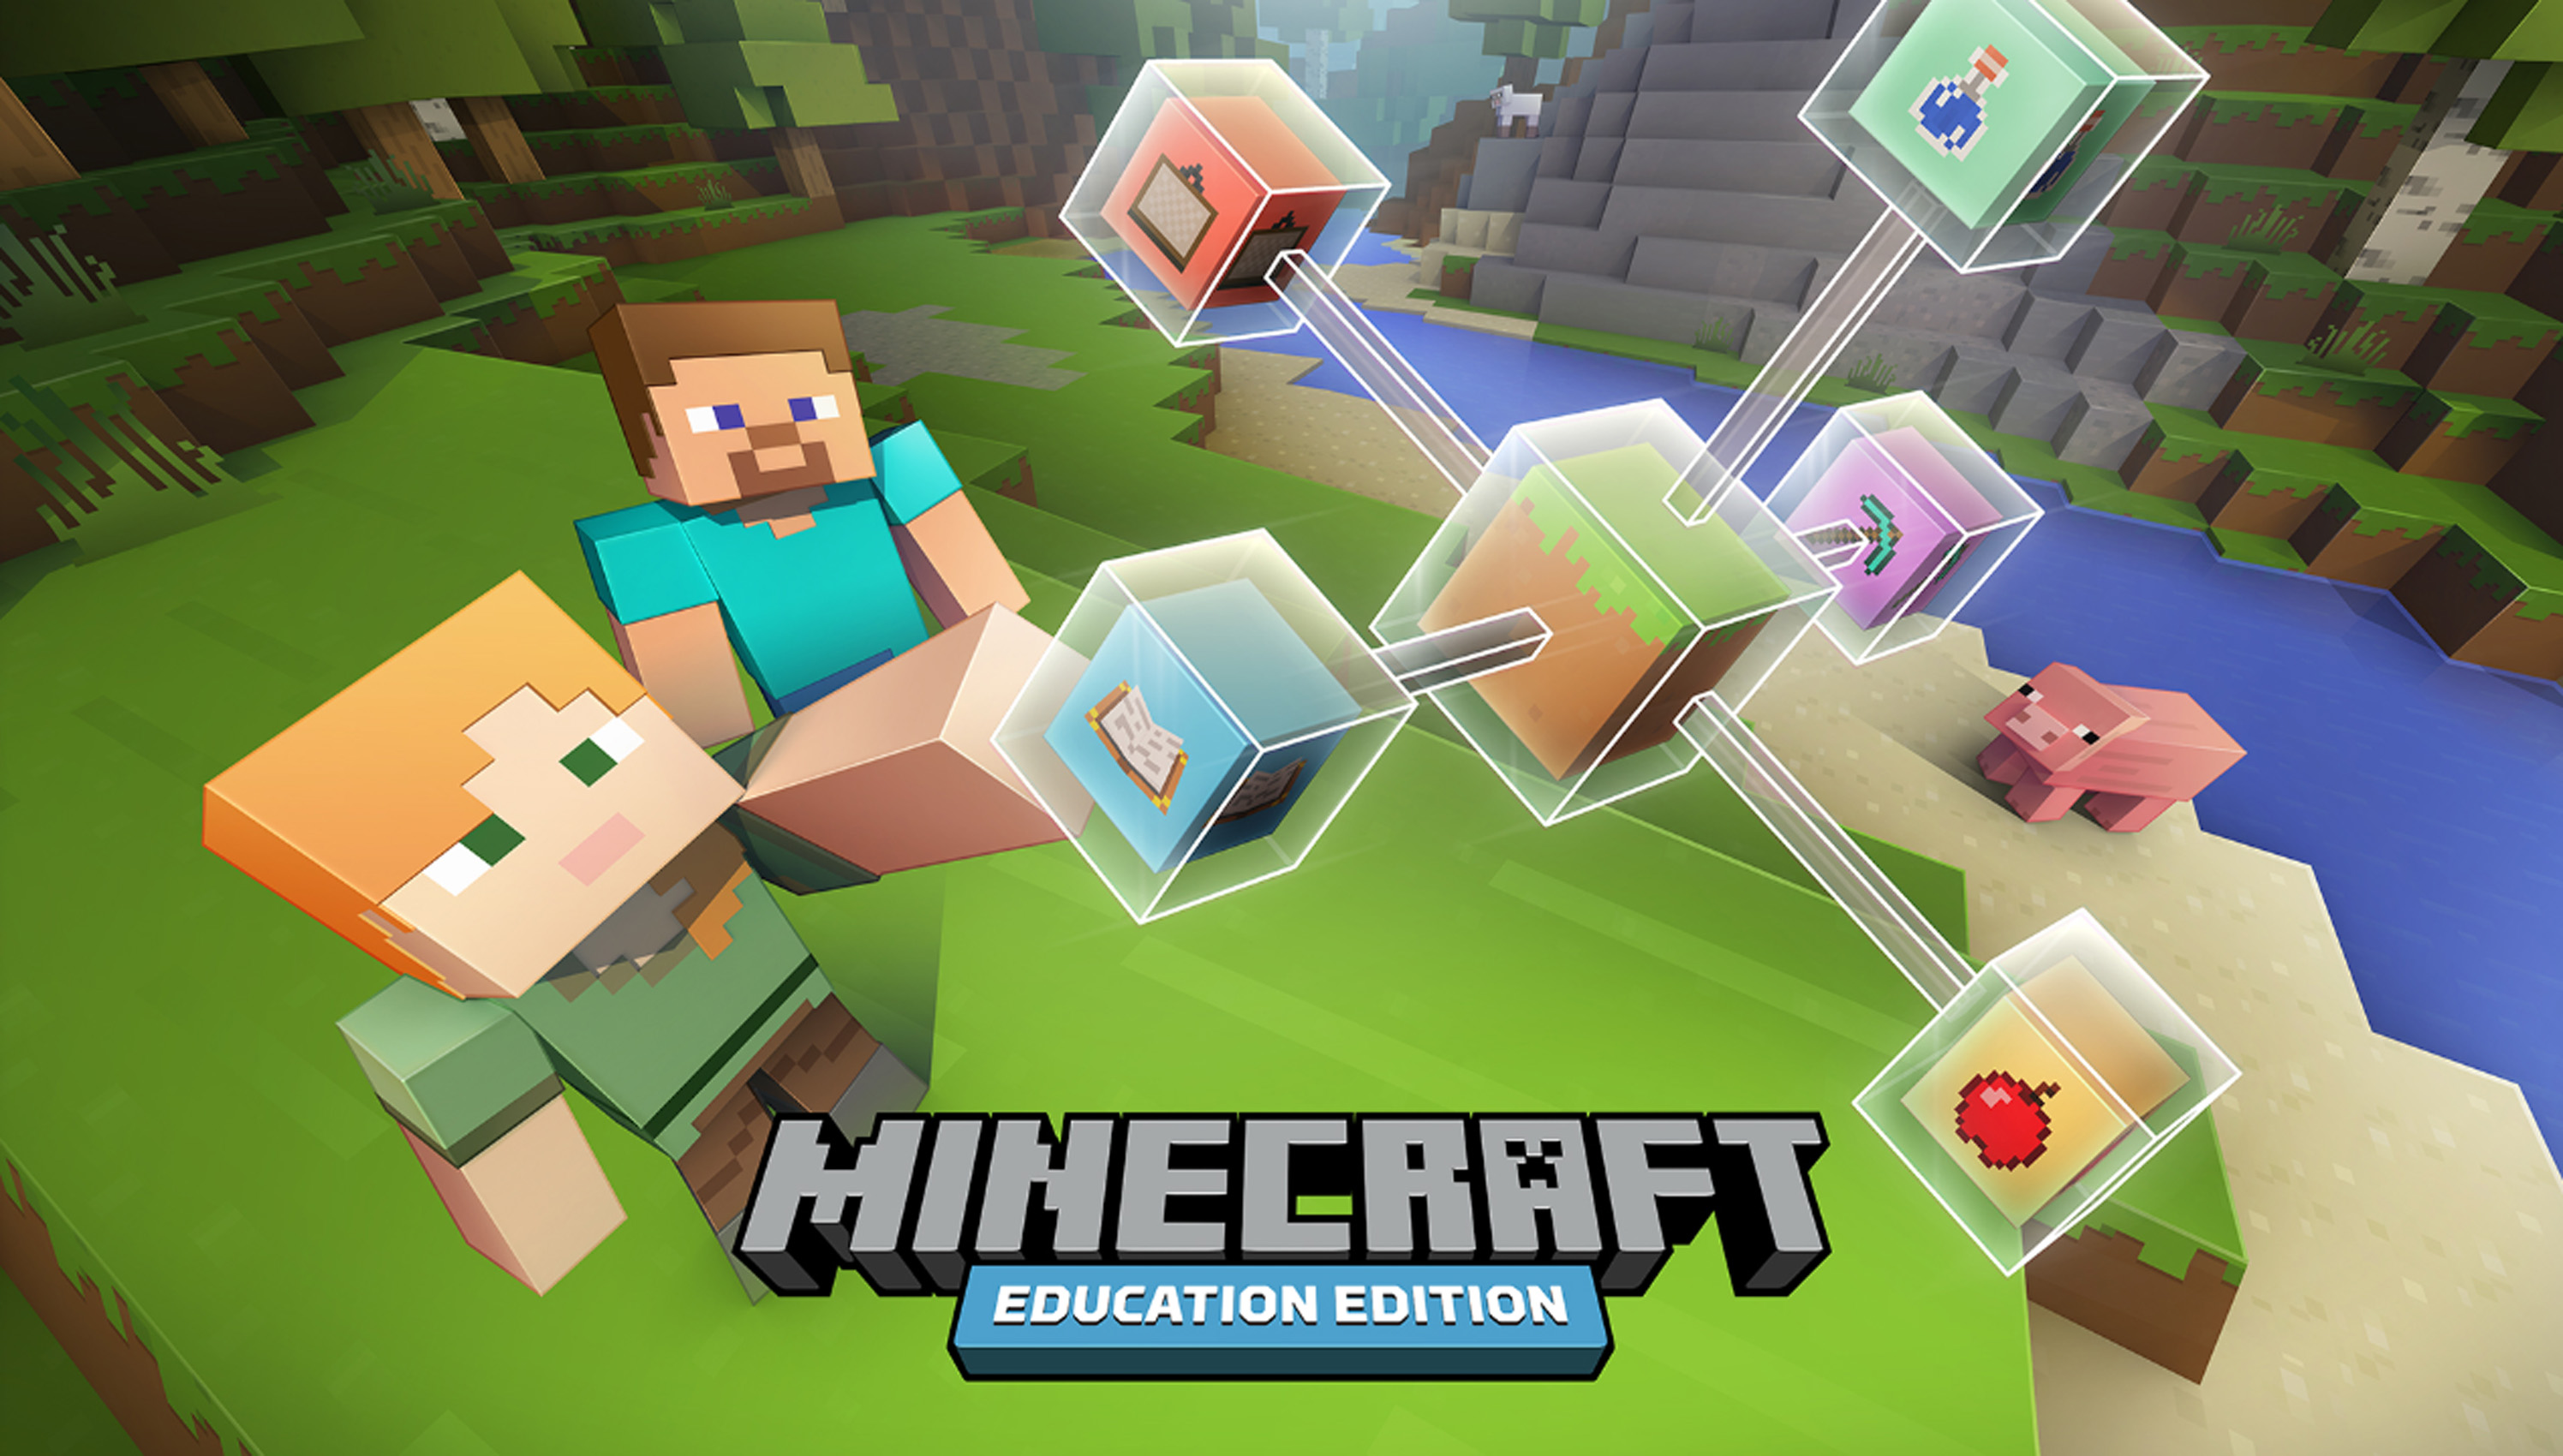 Minecraft: Education Edition is available on Chromebooks Engadget